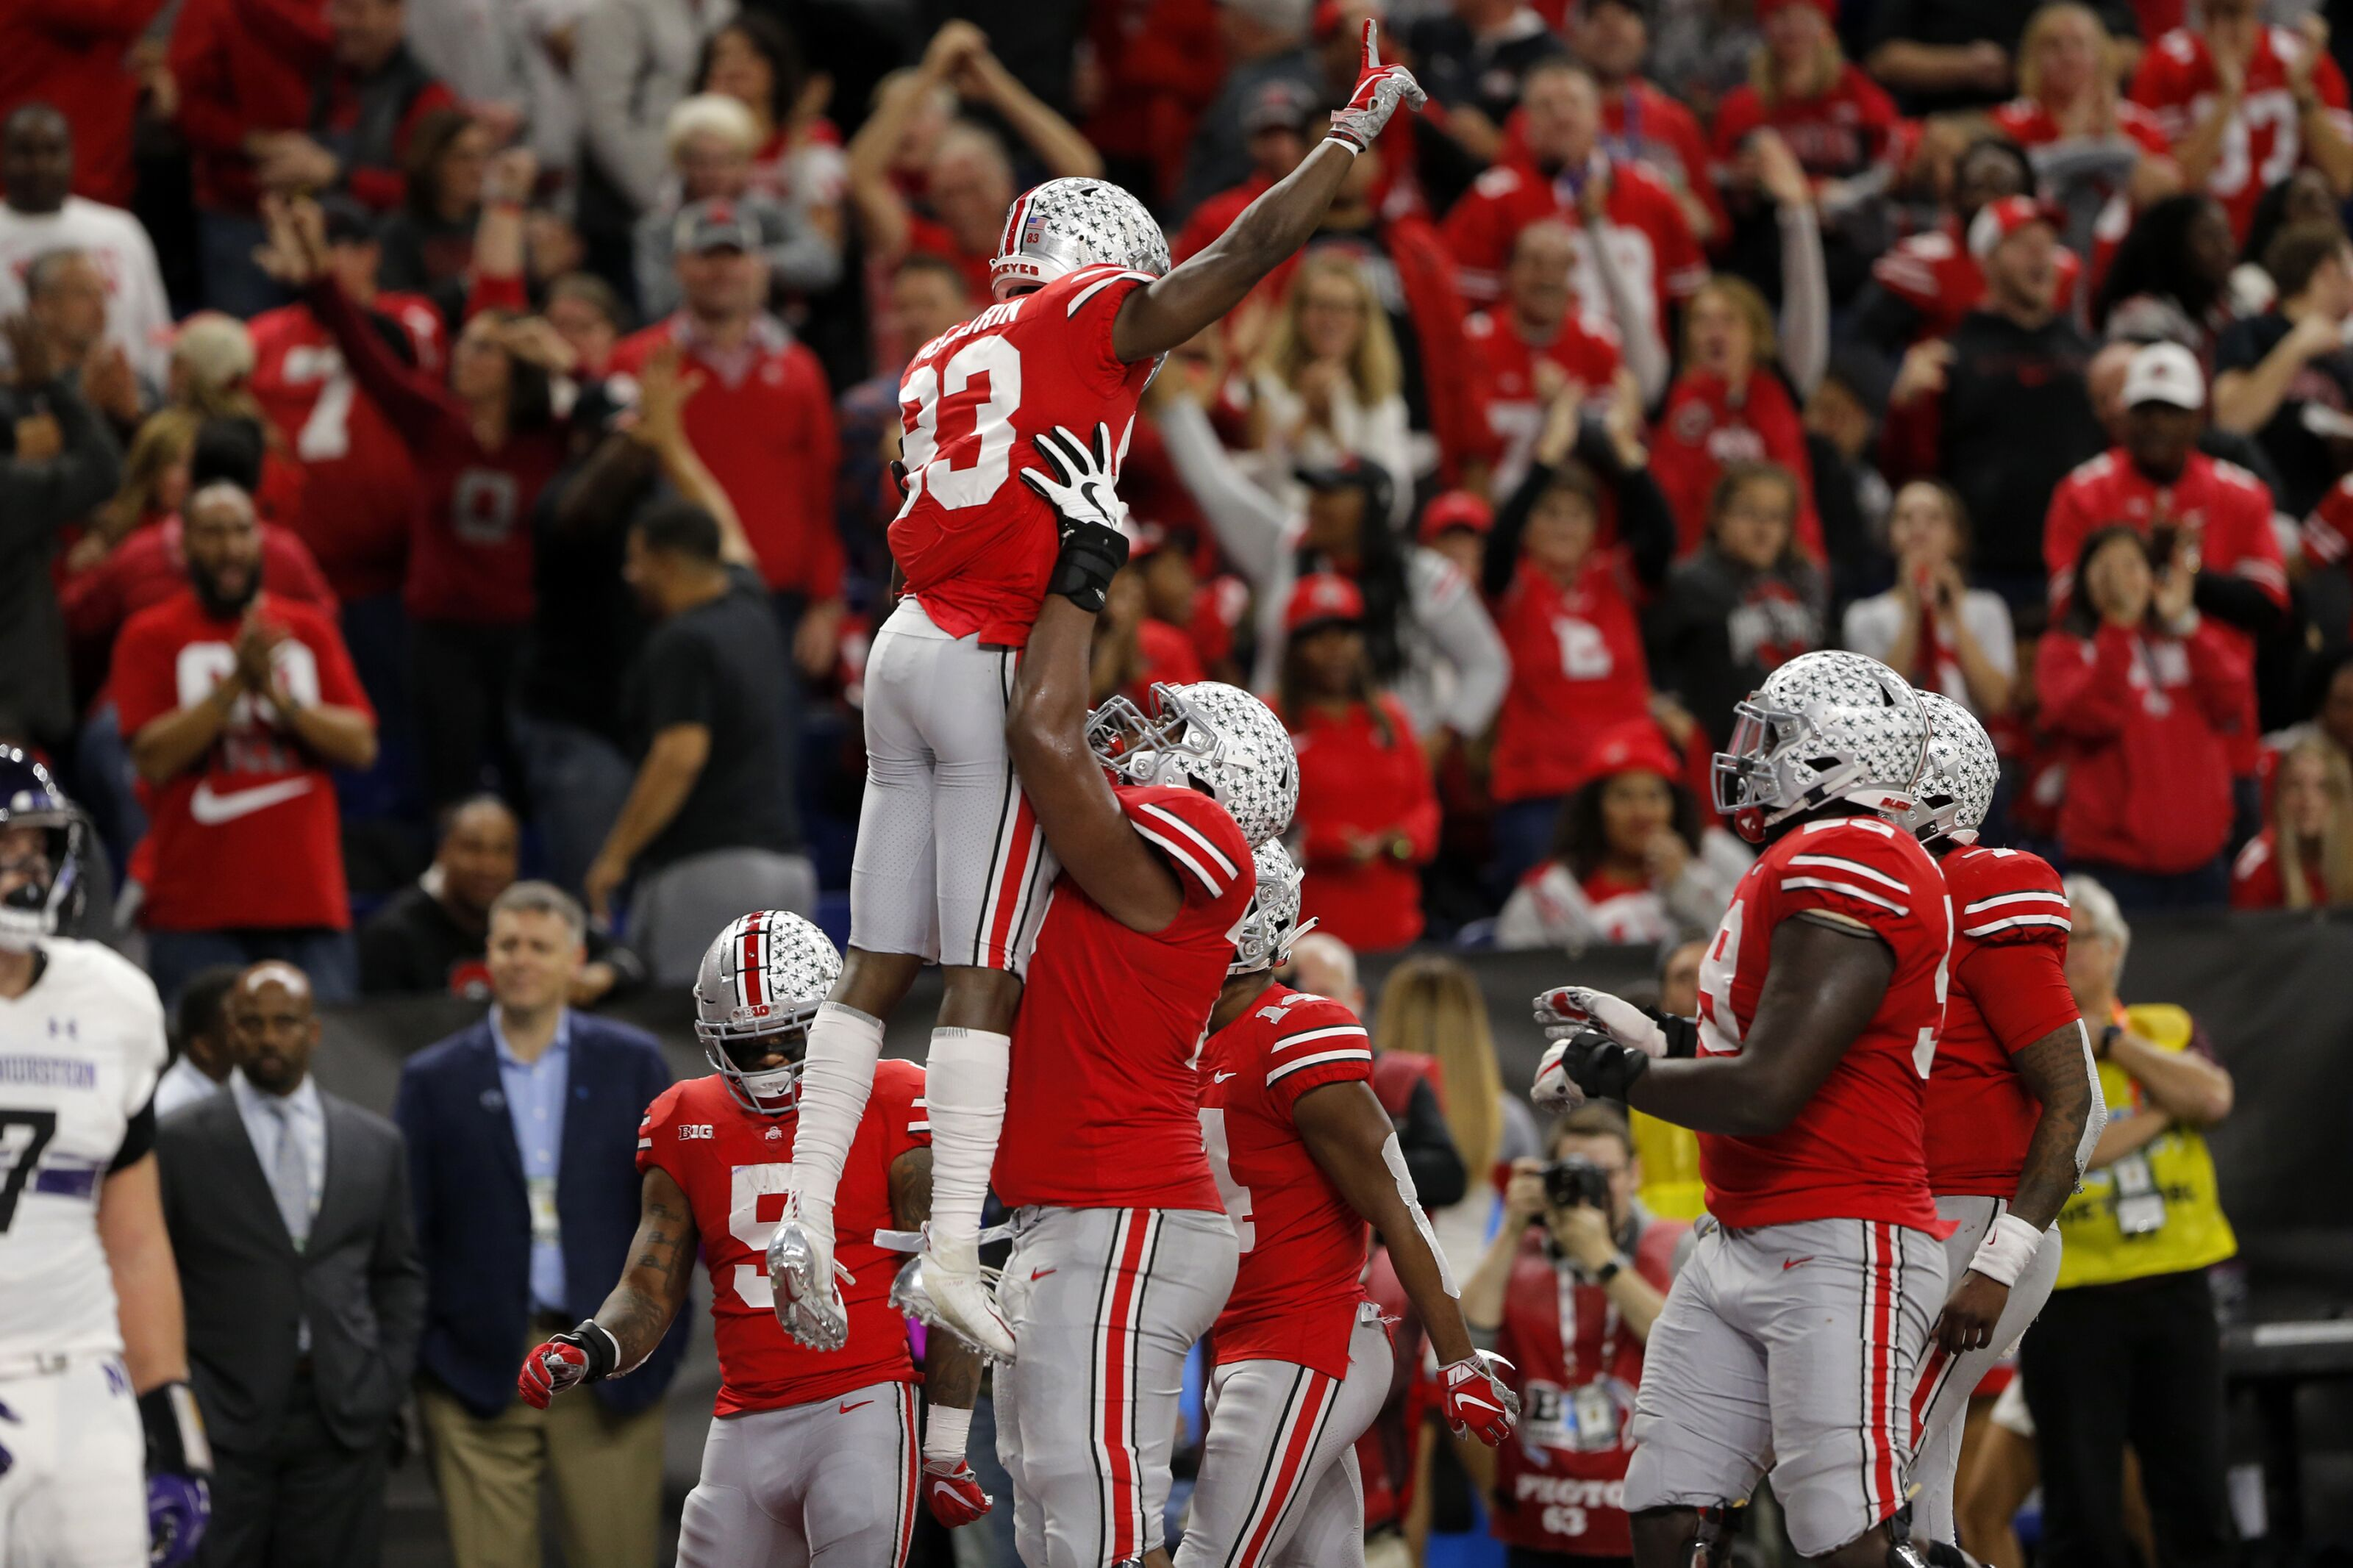 Ohio State Football: Beginning of summer could sound like 4th of July